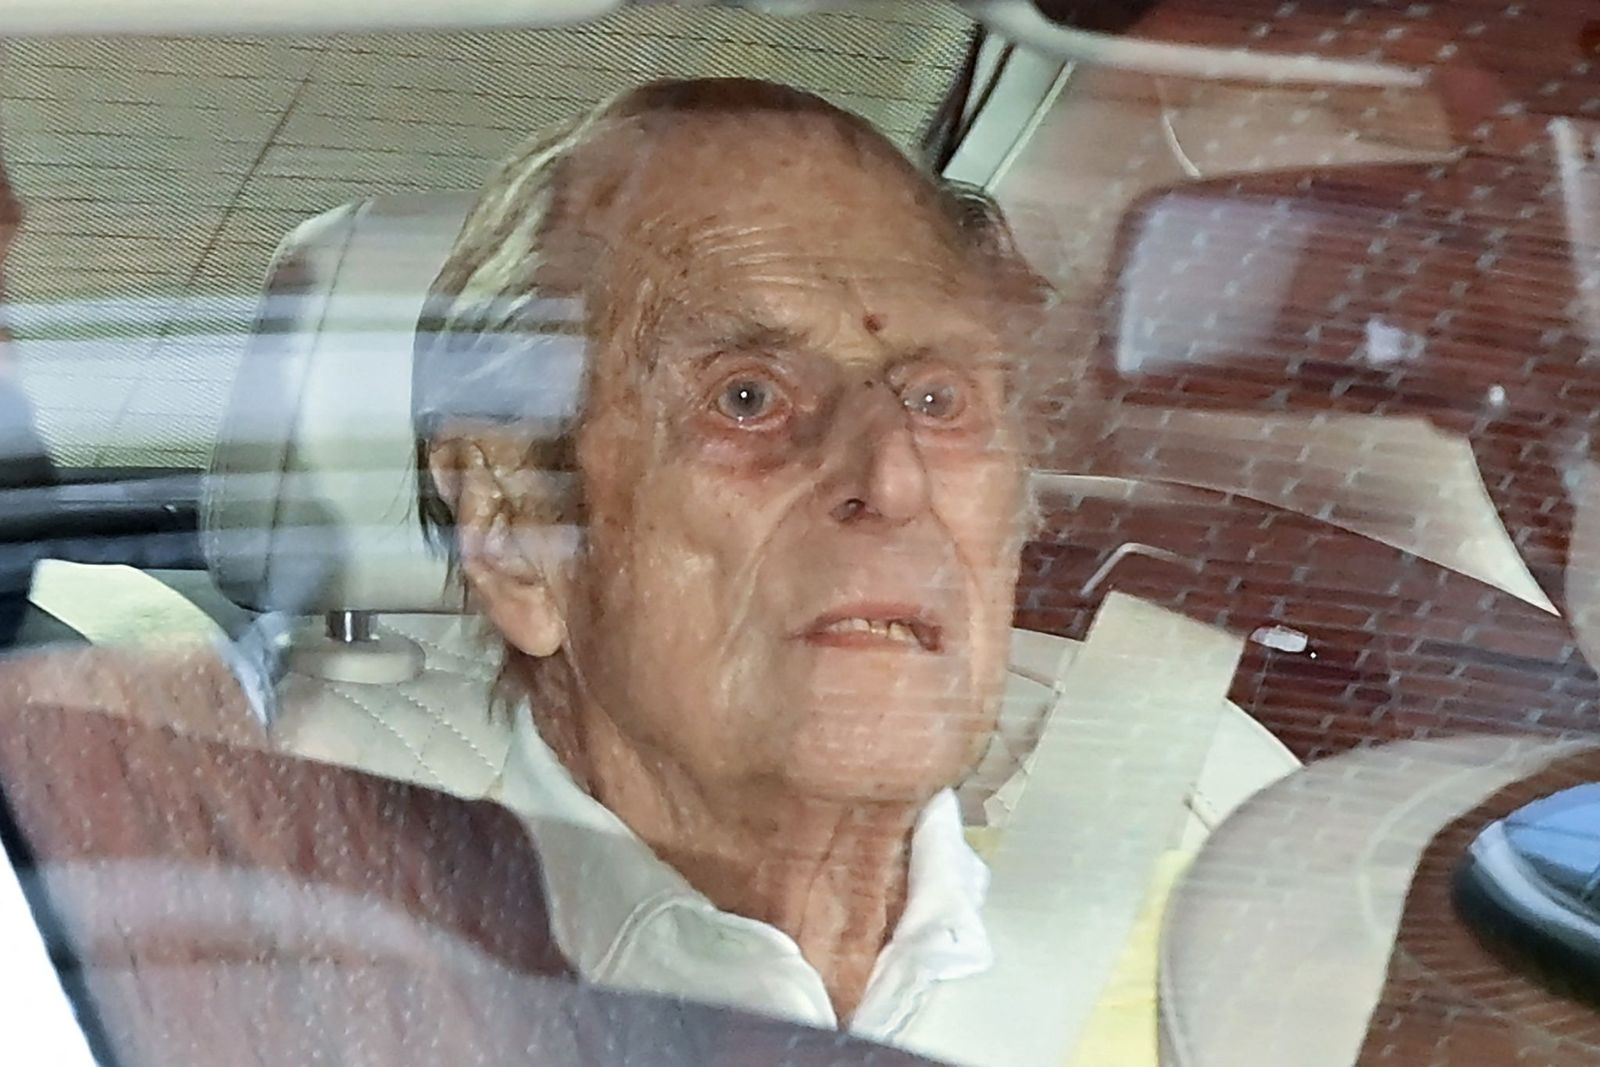 Prince Philip traveling from King Edward VII's Hospital in central London on March 16, 2021. | Getty Images